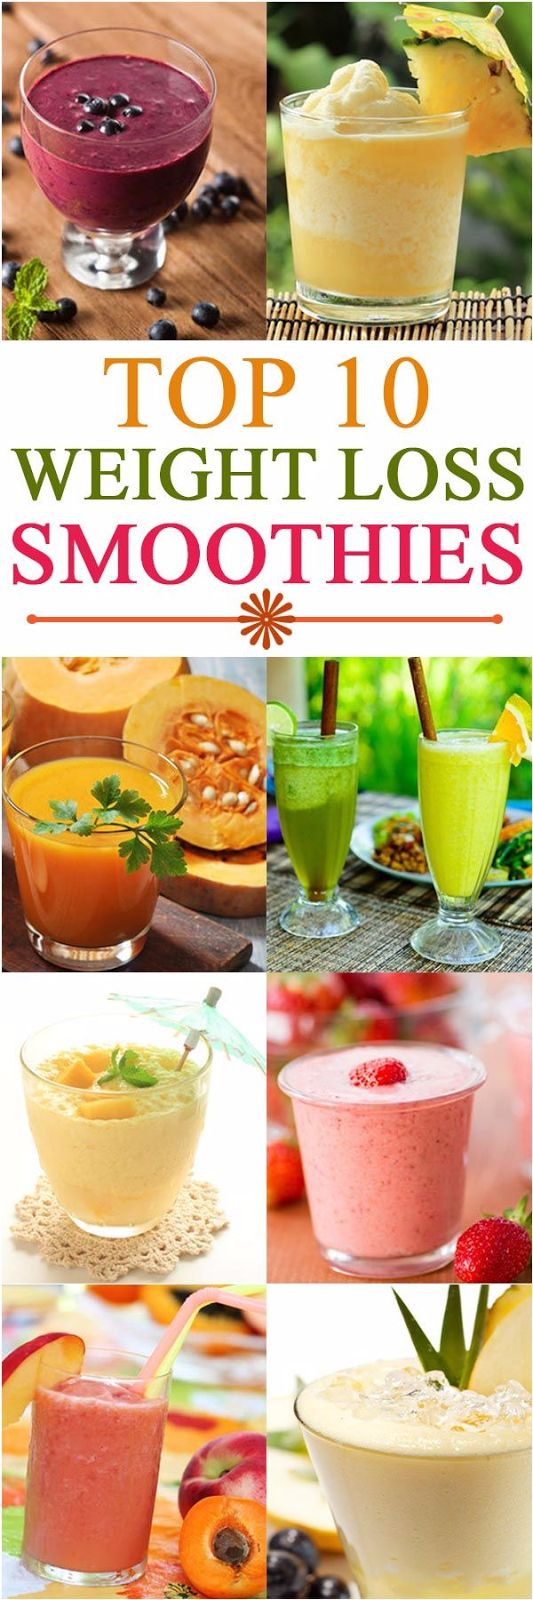 Healthy Breakfast Smoothies For Weight Loss  21 Weight Loss Smoothies With Recipes And Benefits